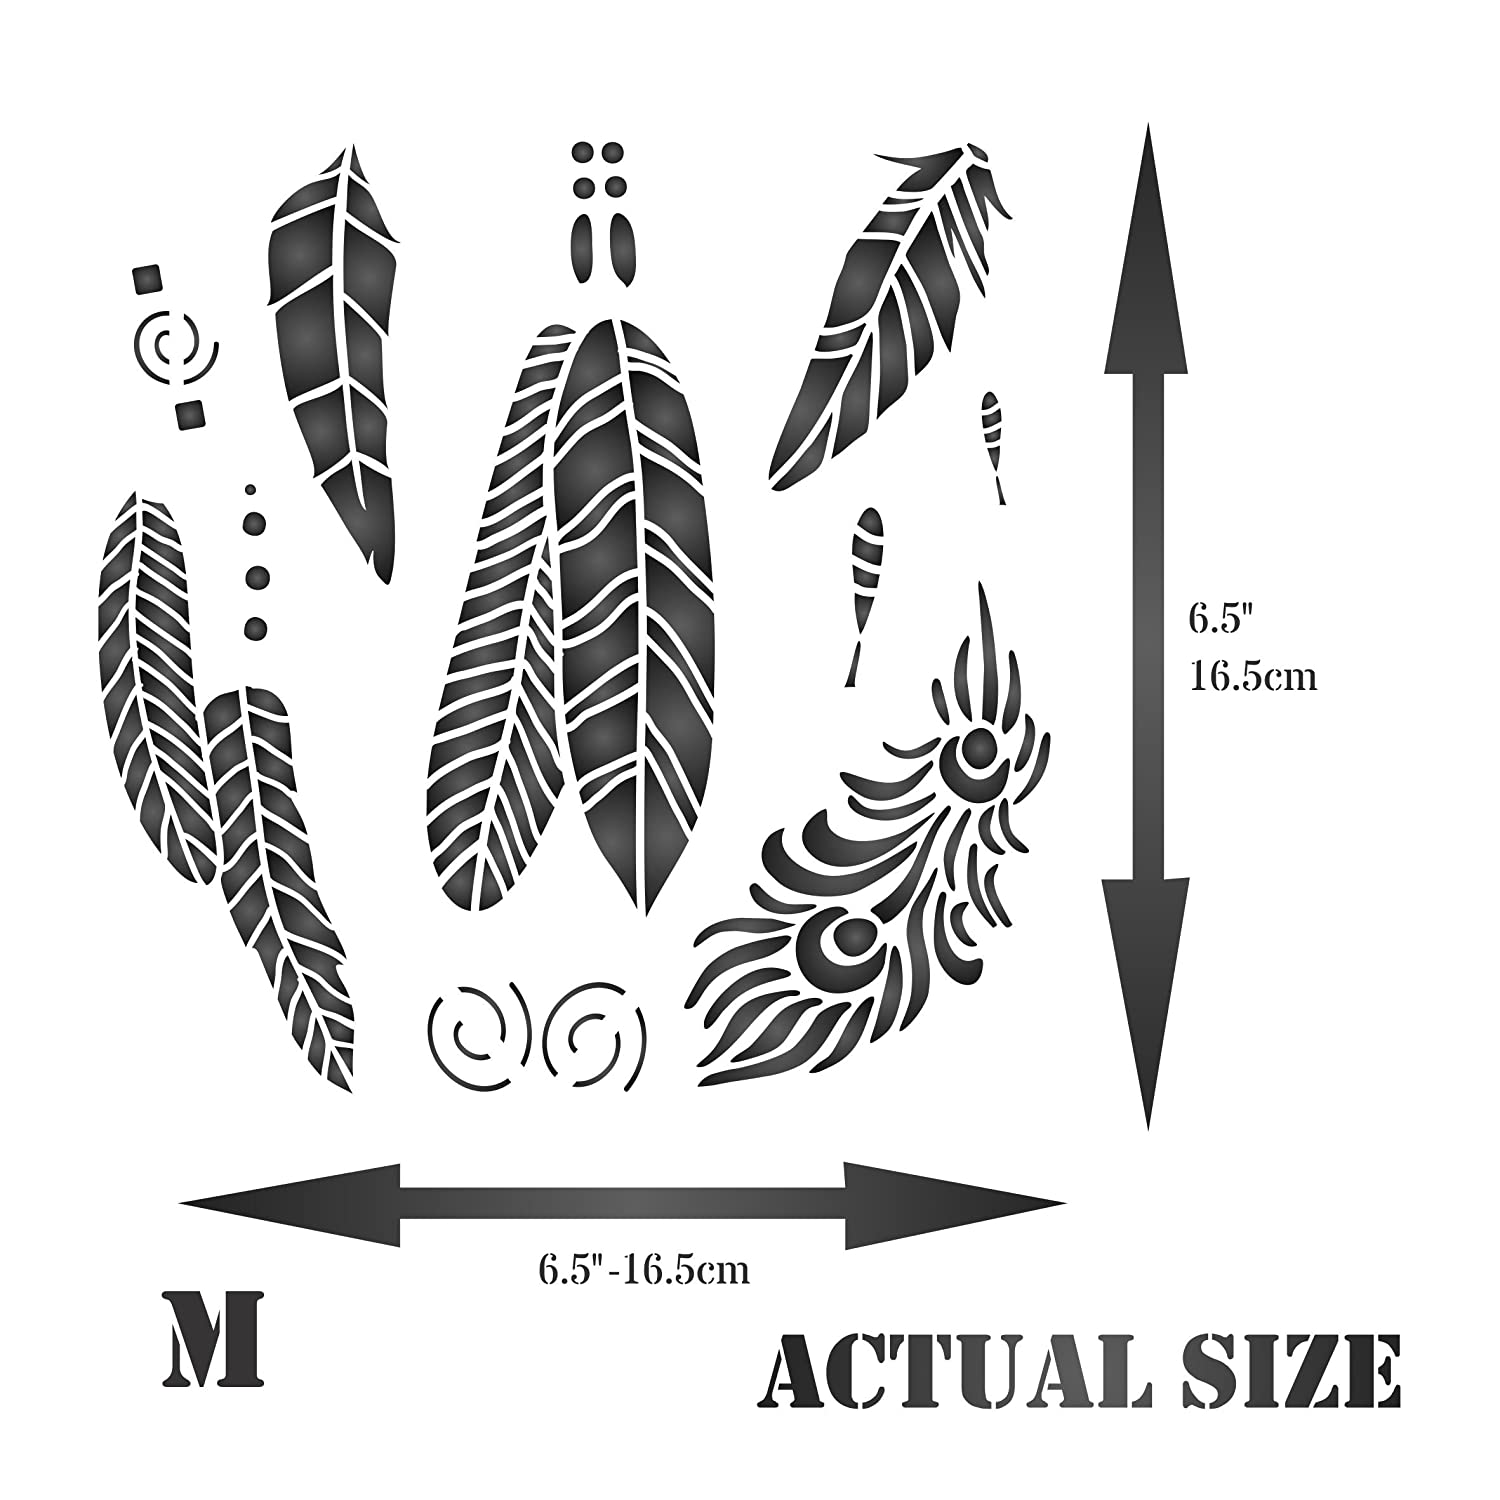 Use on Paper Projects Scrapbook Journal Walls Floors Fabric Furniture Glass Wood etc. 11.5 x 11.5cm S - Reusable Native American Bird Peacock Feather Wall Stencil Template Feathers Stencil